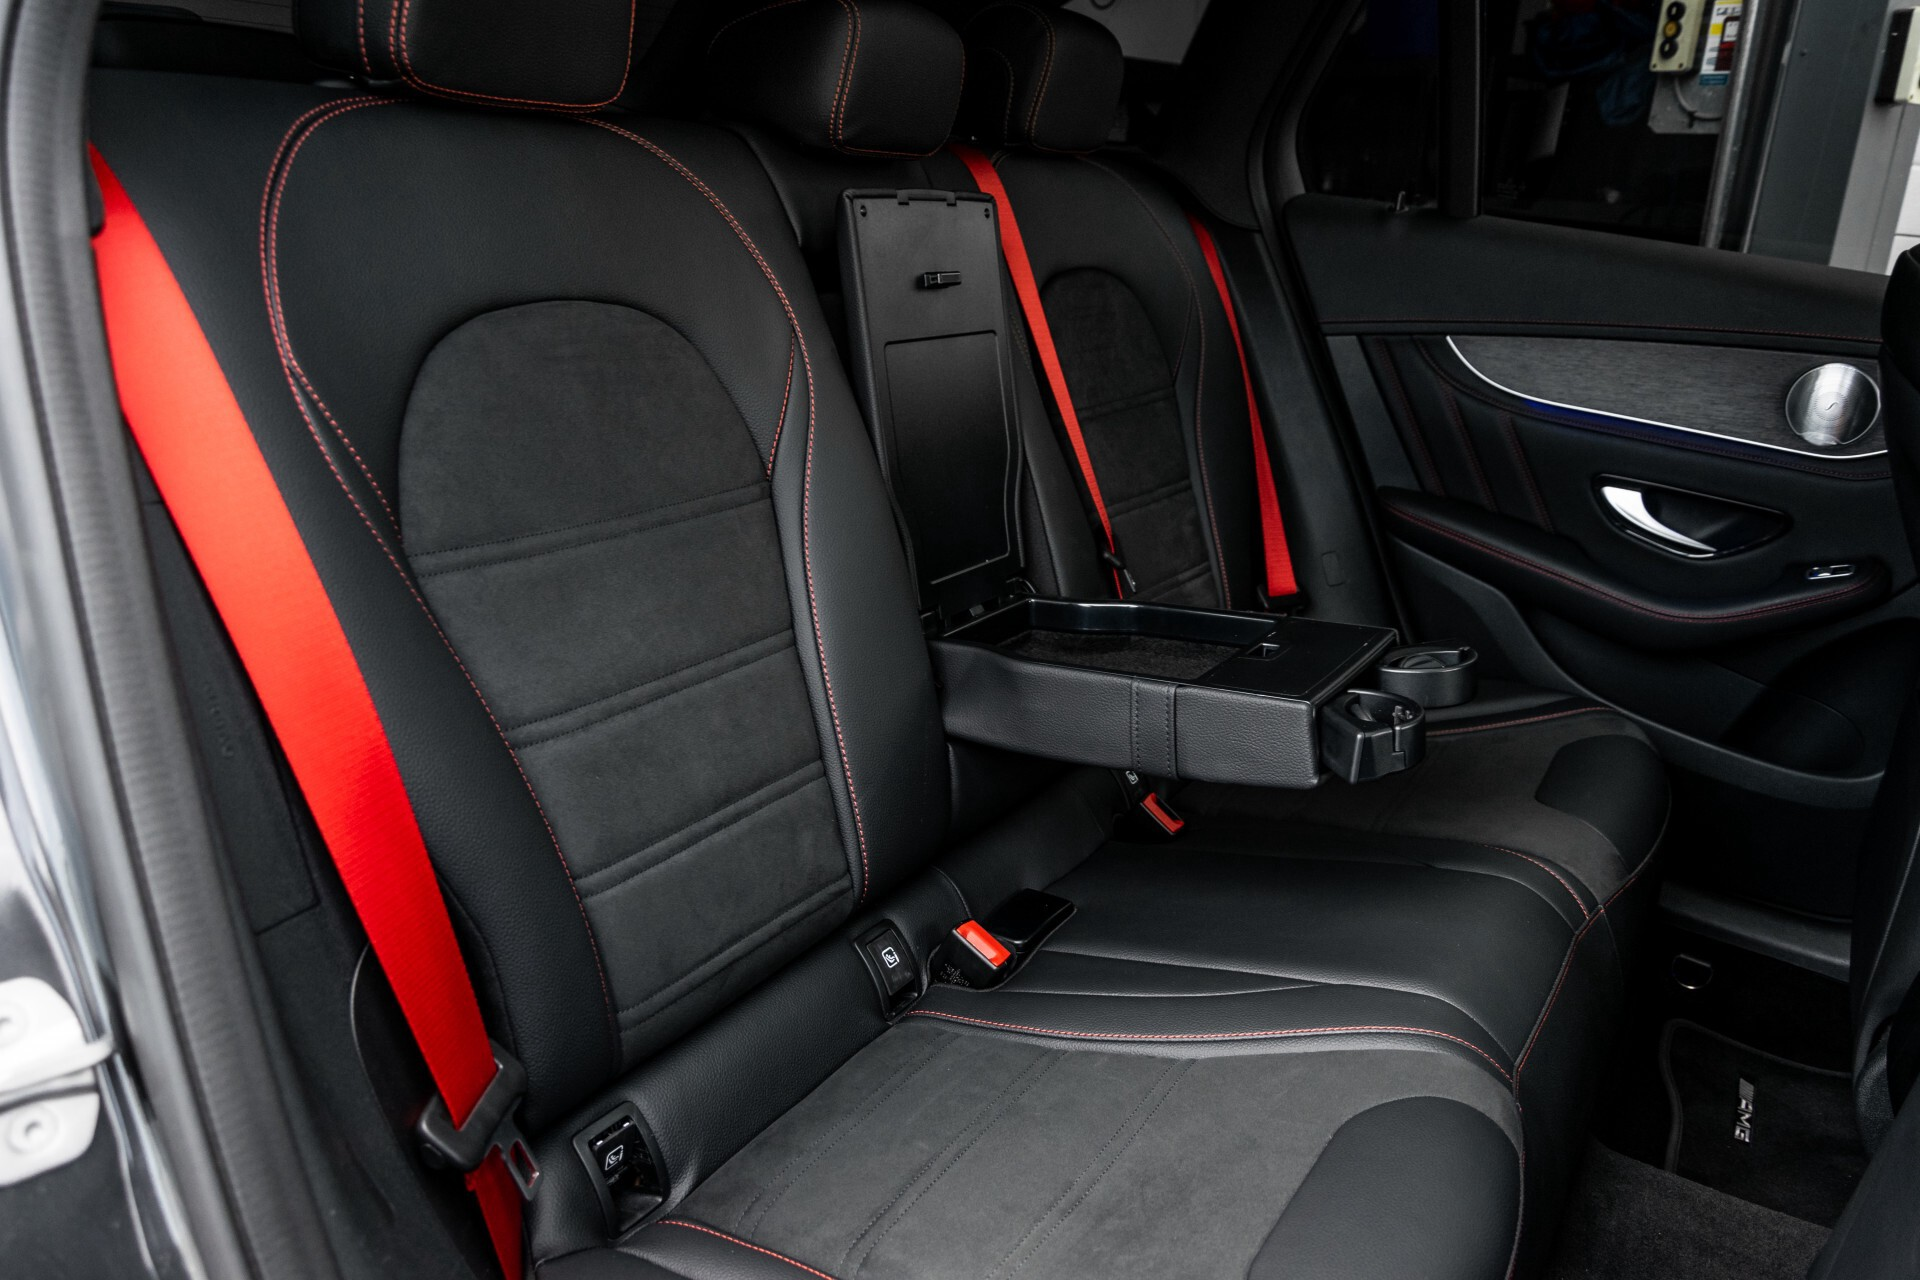 Mercedes-Benz GLC 43 AMG 4-M Night Pano/Sportuitlaat/Keyless/Distronic/Widescreen/MBUX/Trekhaak Aut9 Foto 6